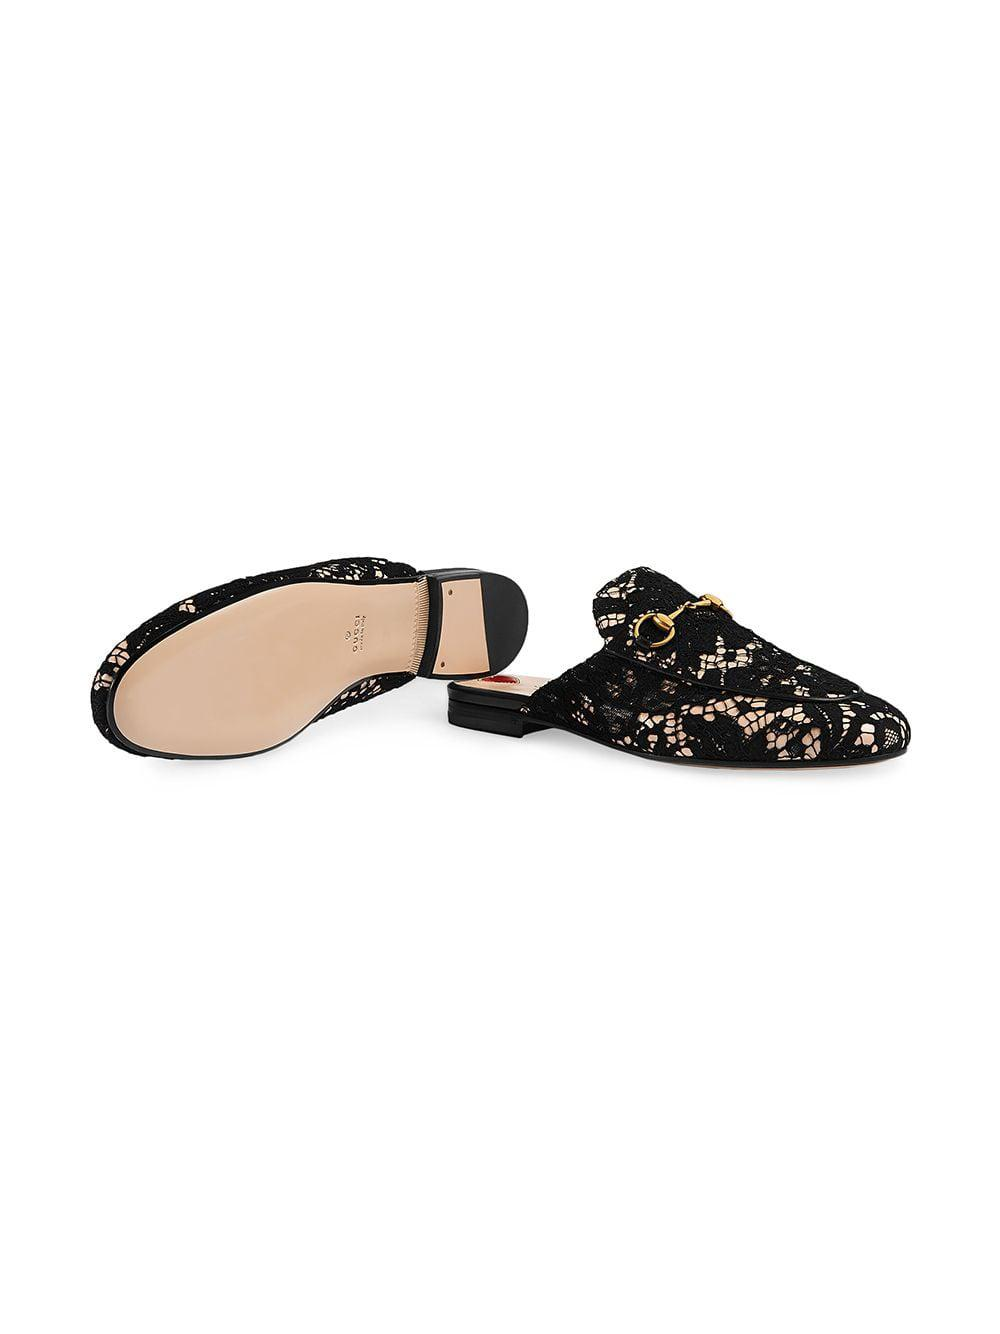 498f742808e Lyst - Gucci Black Princetown Lace Mules in Black - Save 31%